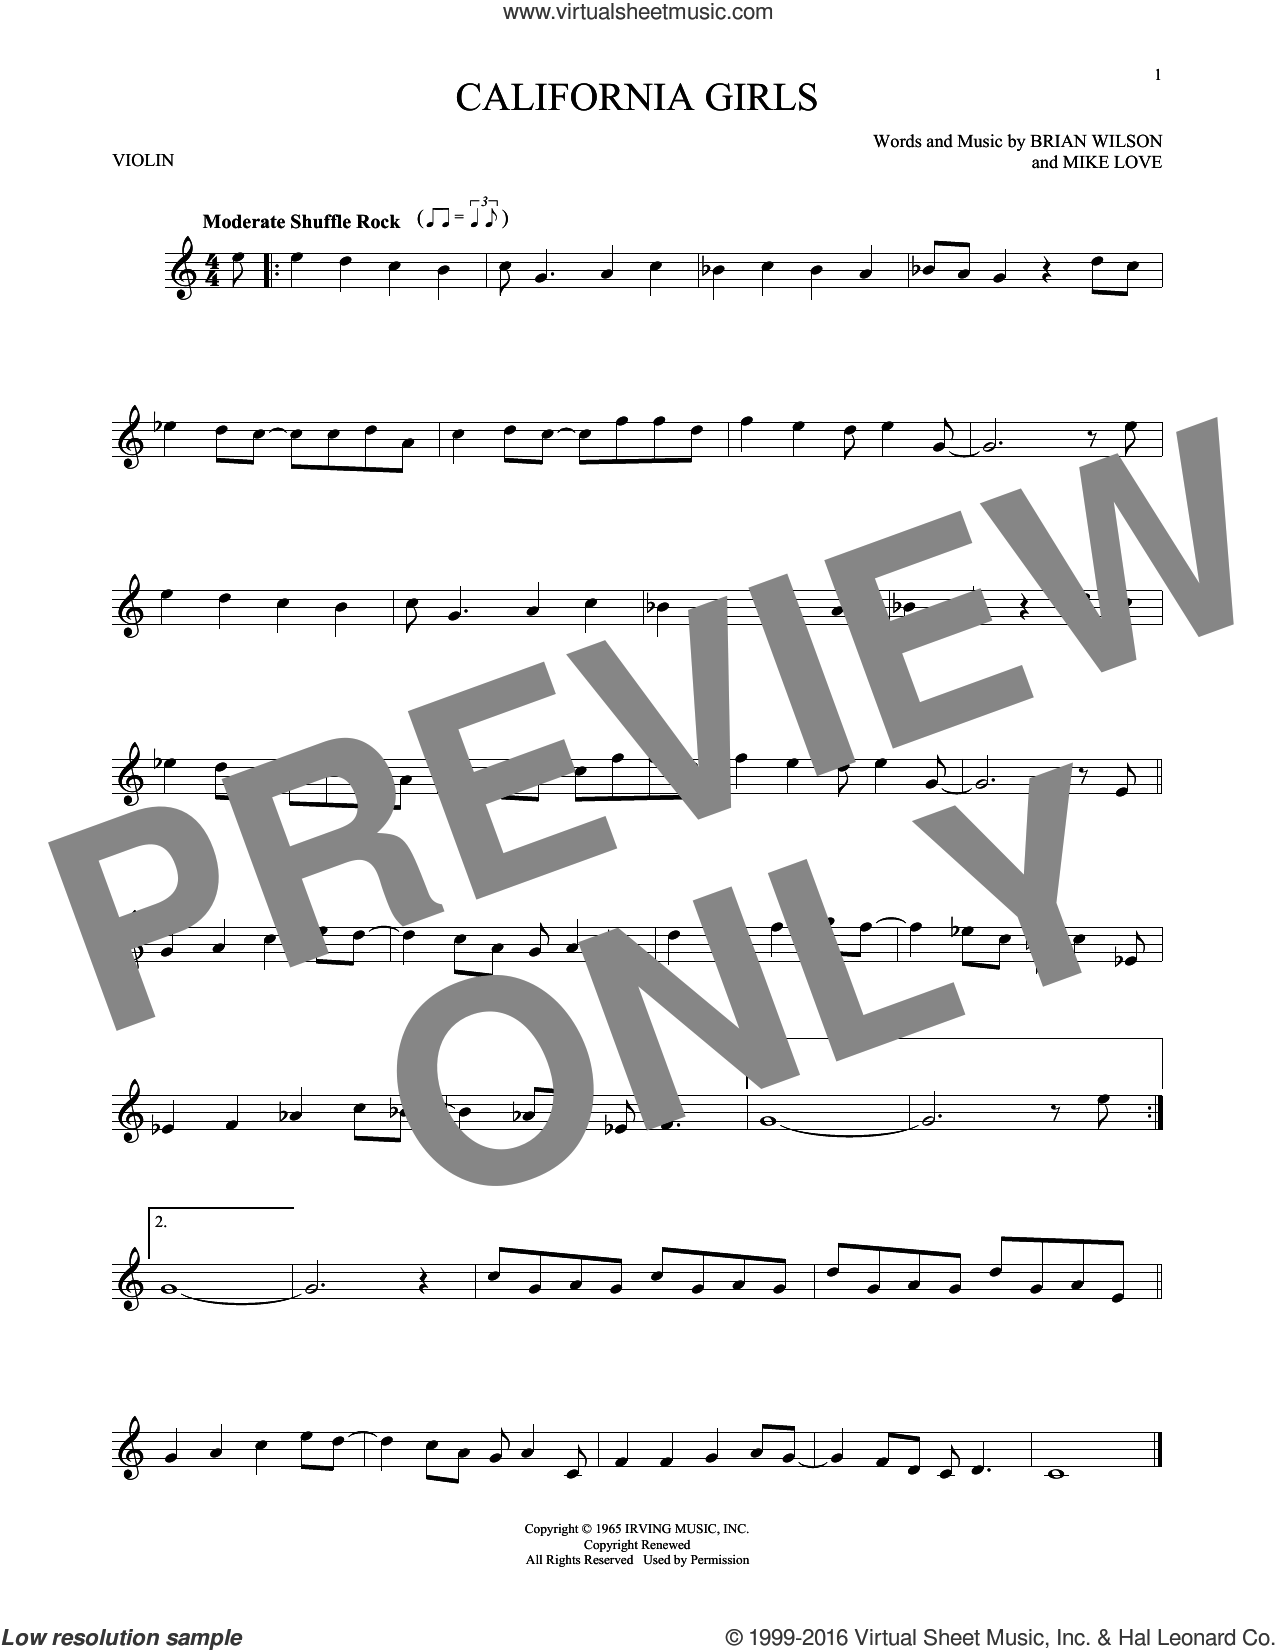 California Girls sheet music for violin solo by The Beach Boys, David Lee Roth, Brian Wilson and Mike Love, intermediate skill level